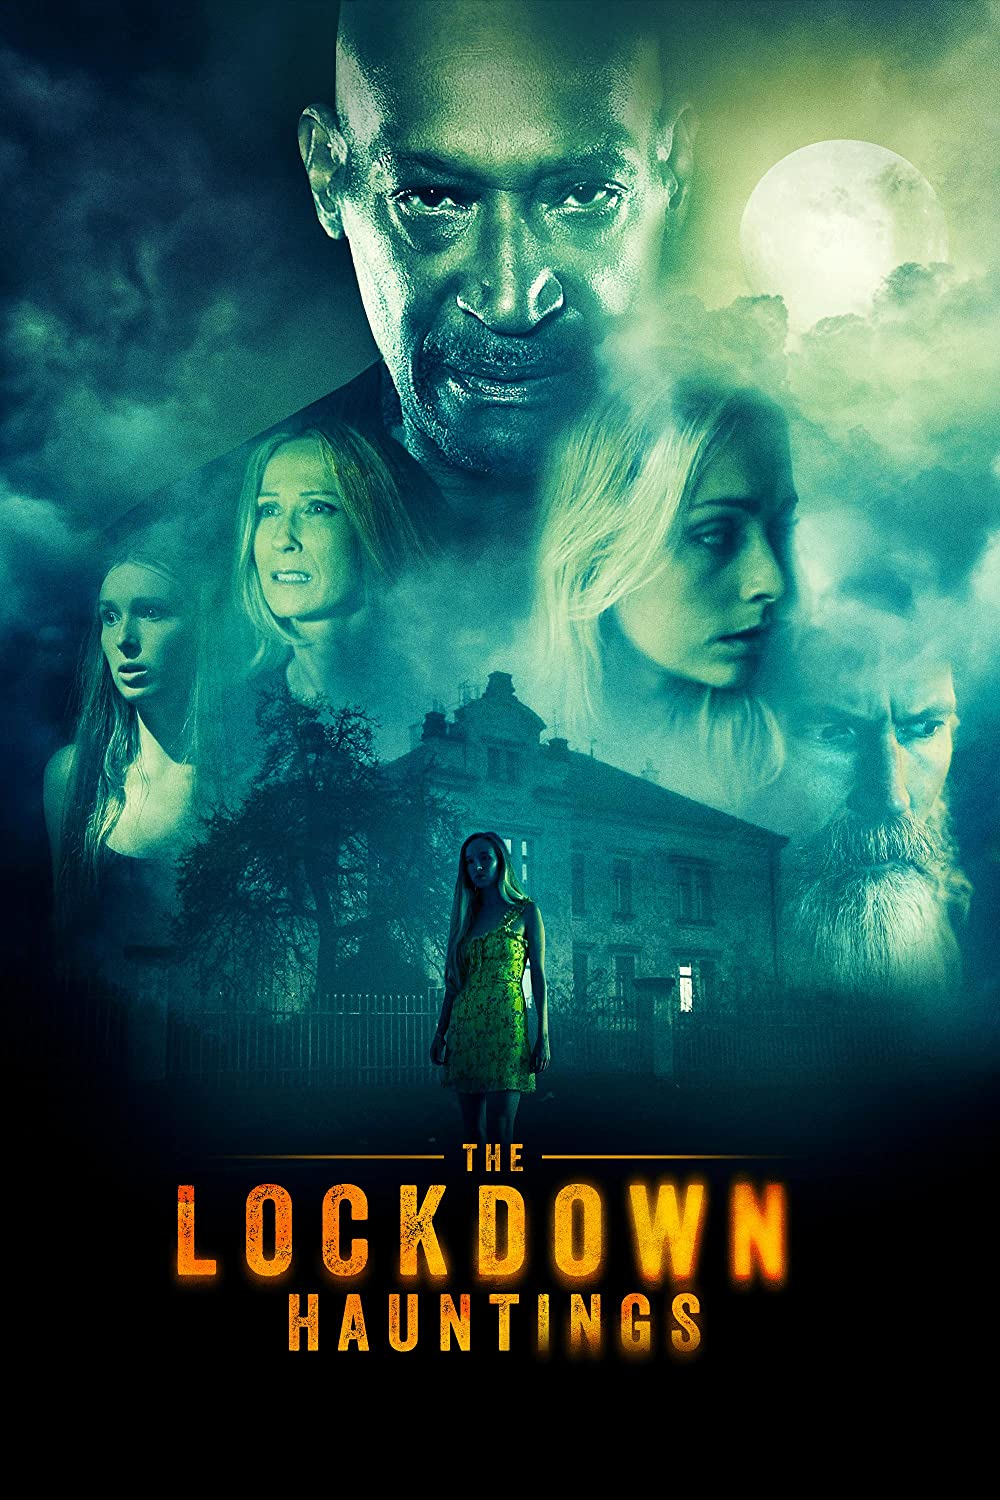 The Lockdown Hauntings 2021 English HDRip 300MB Download